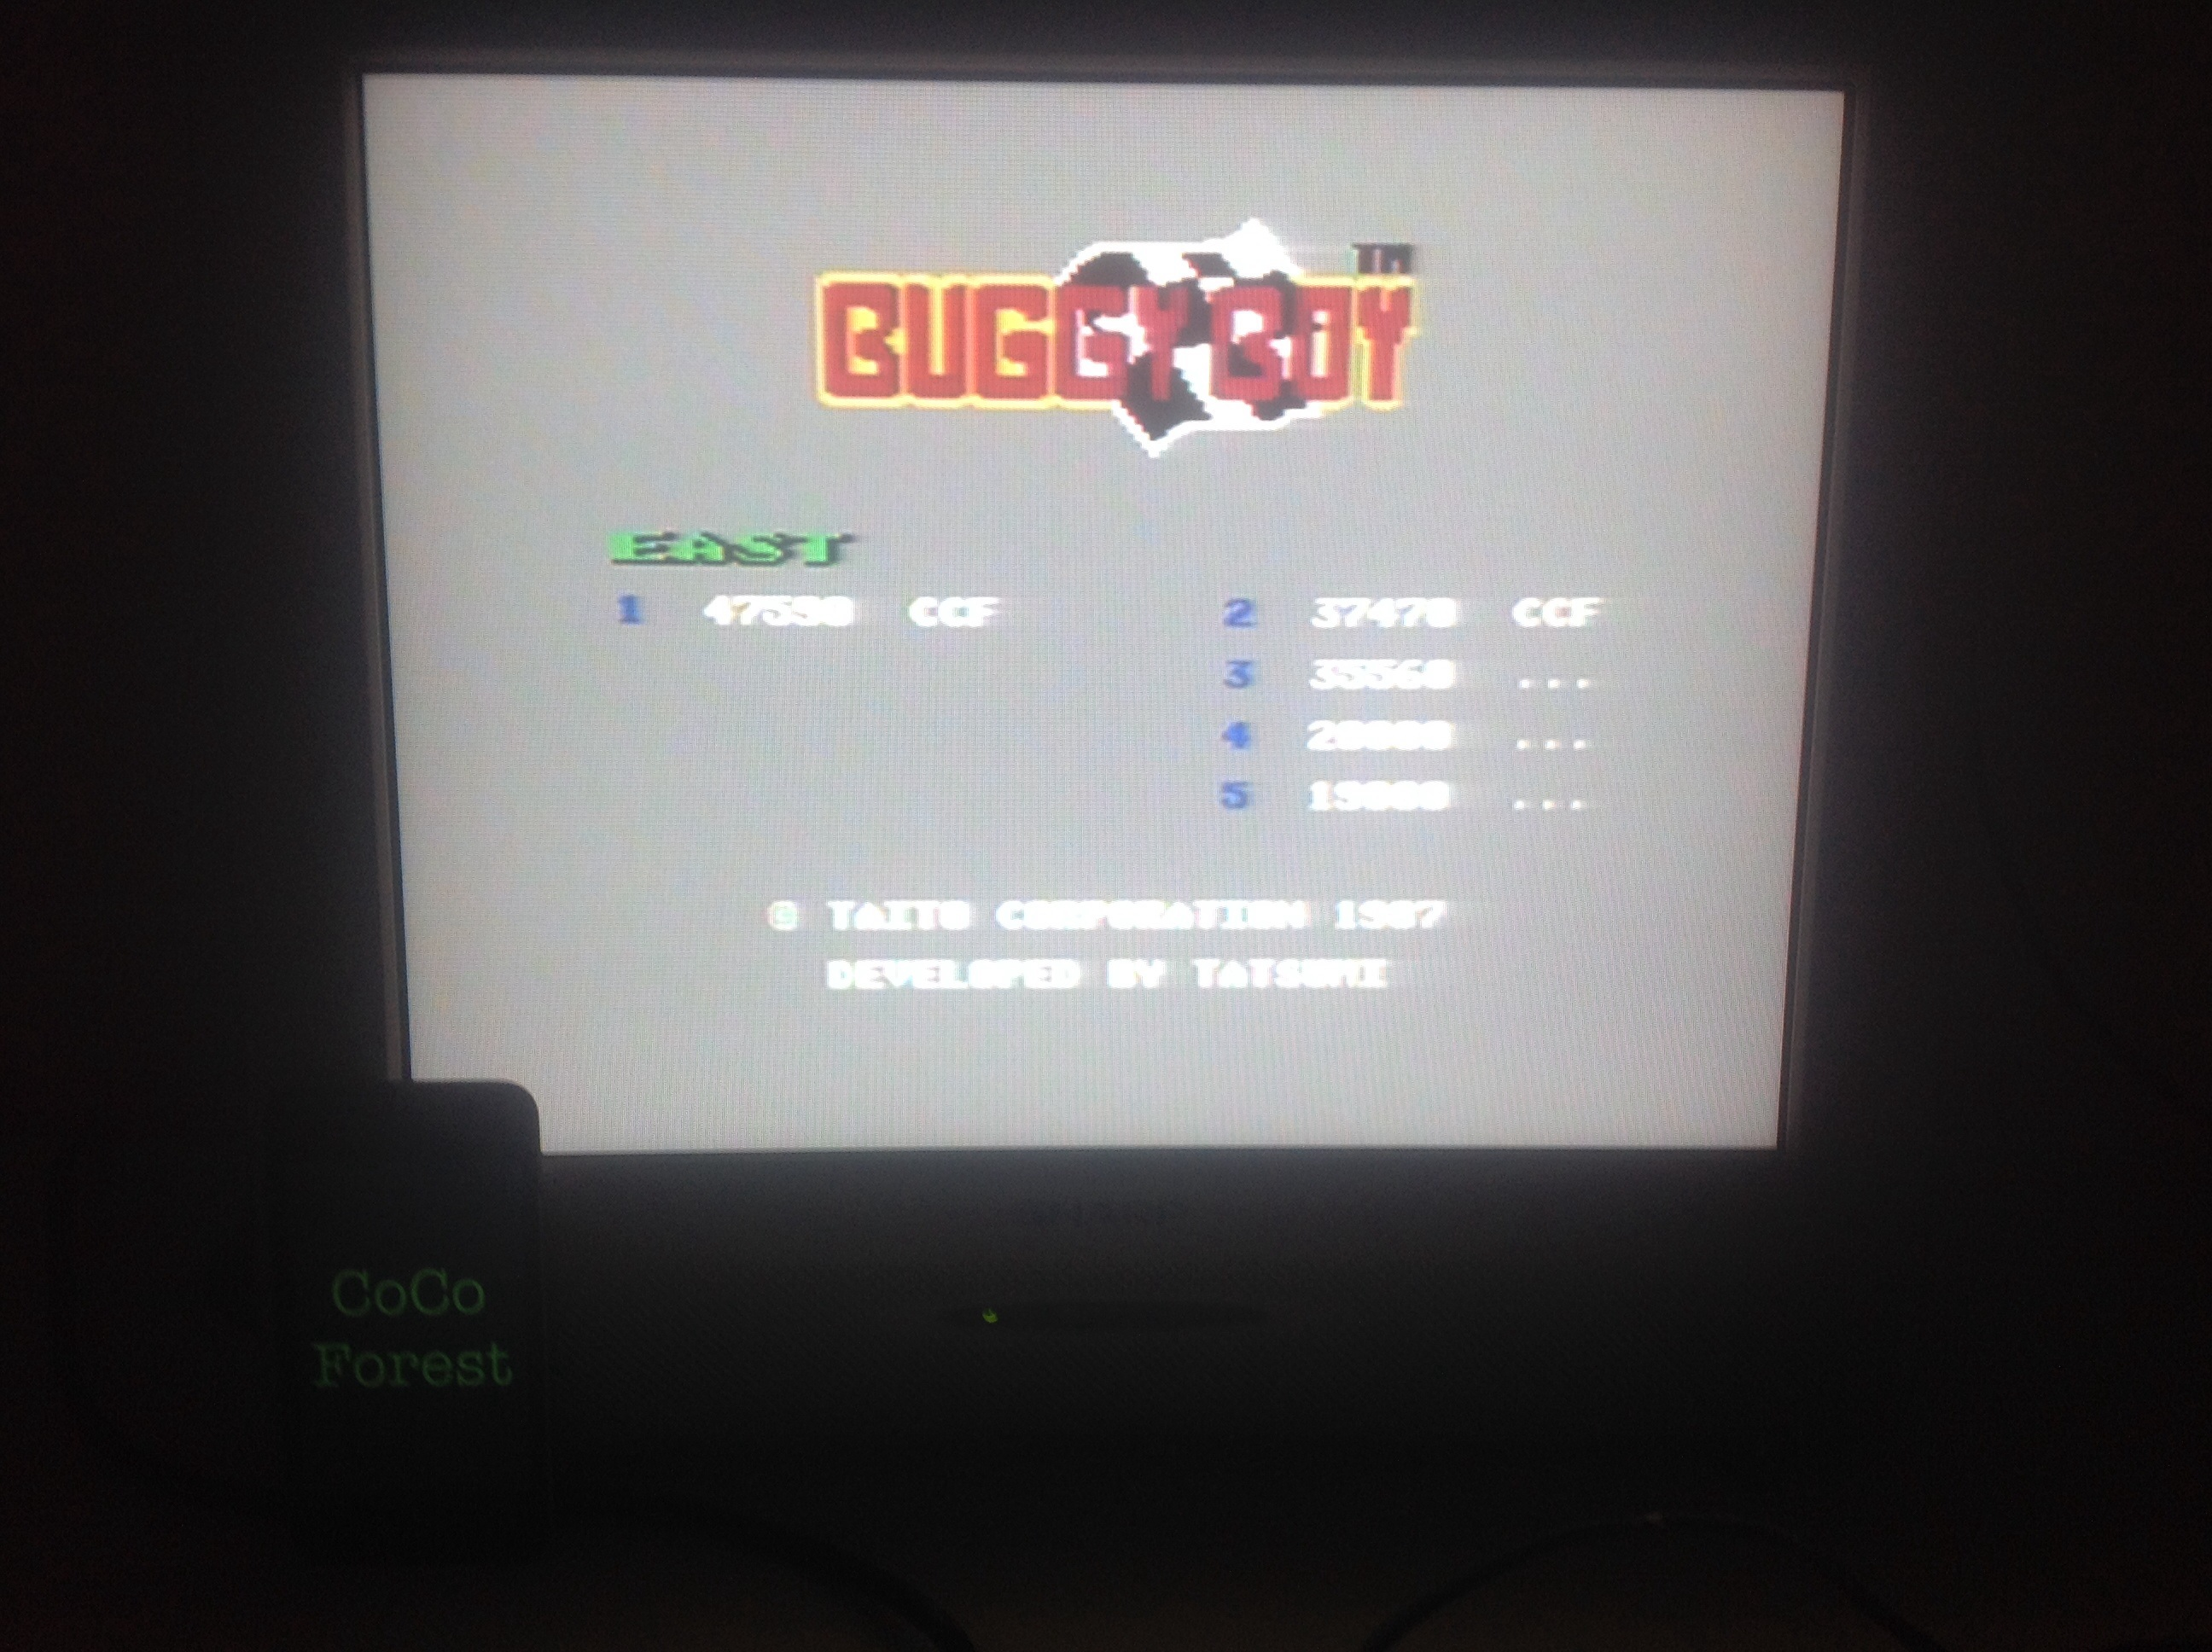 Buggy Boy: East 47,590 points